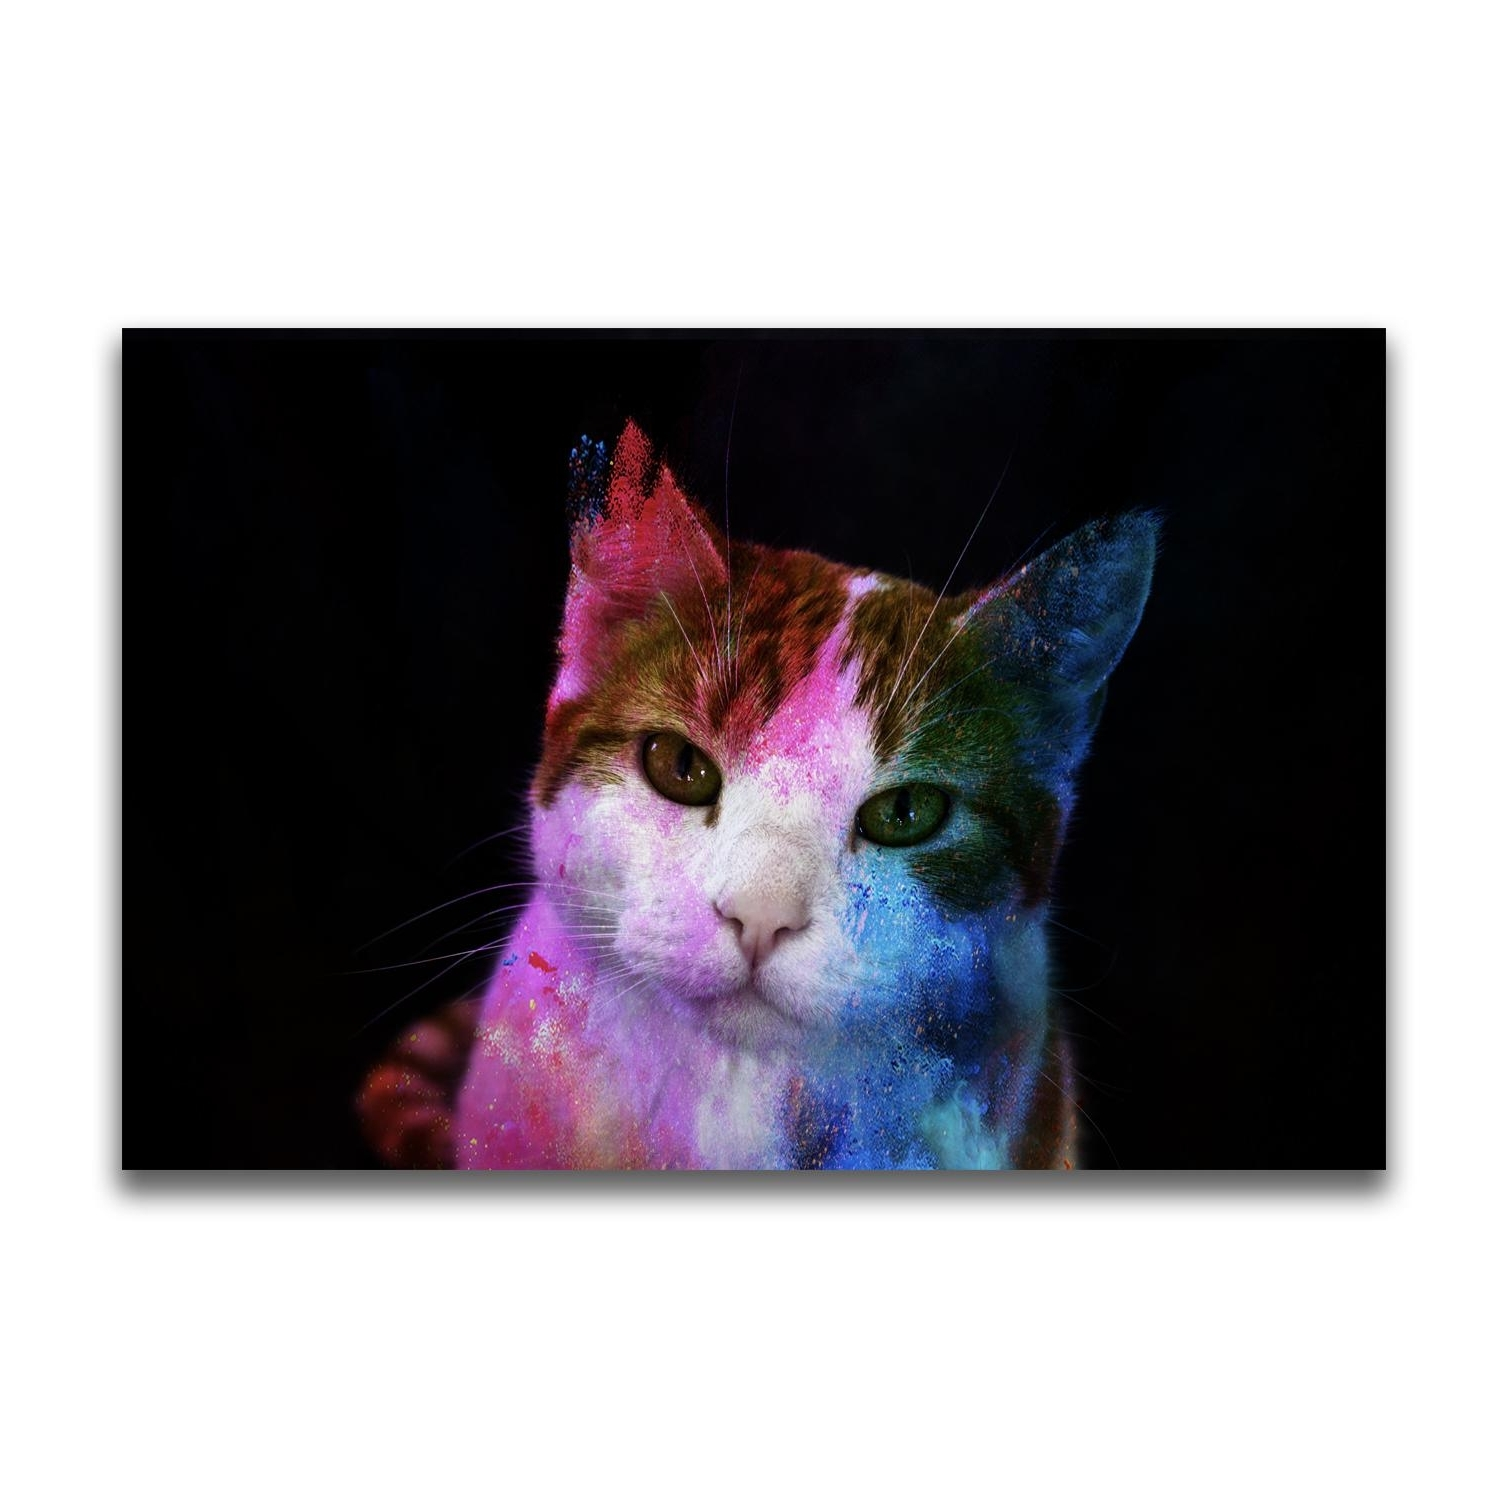 Yj Art A Colorful Cat Unframed Modern Canvas Wall Art For Home And inside Well-known Cat Canvas Wall Art